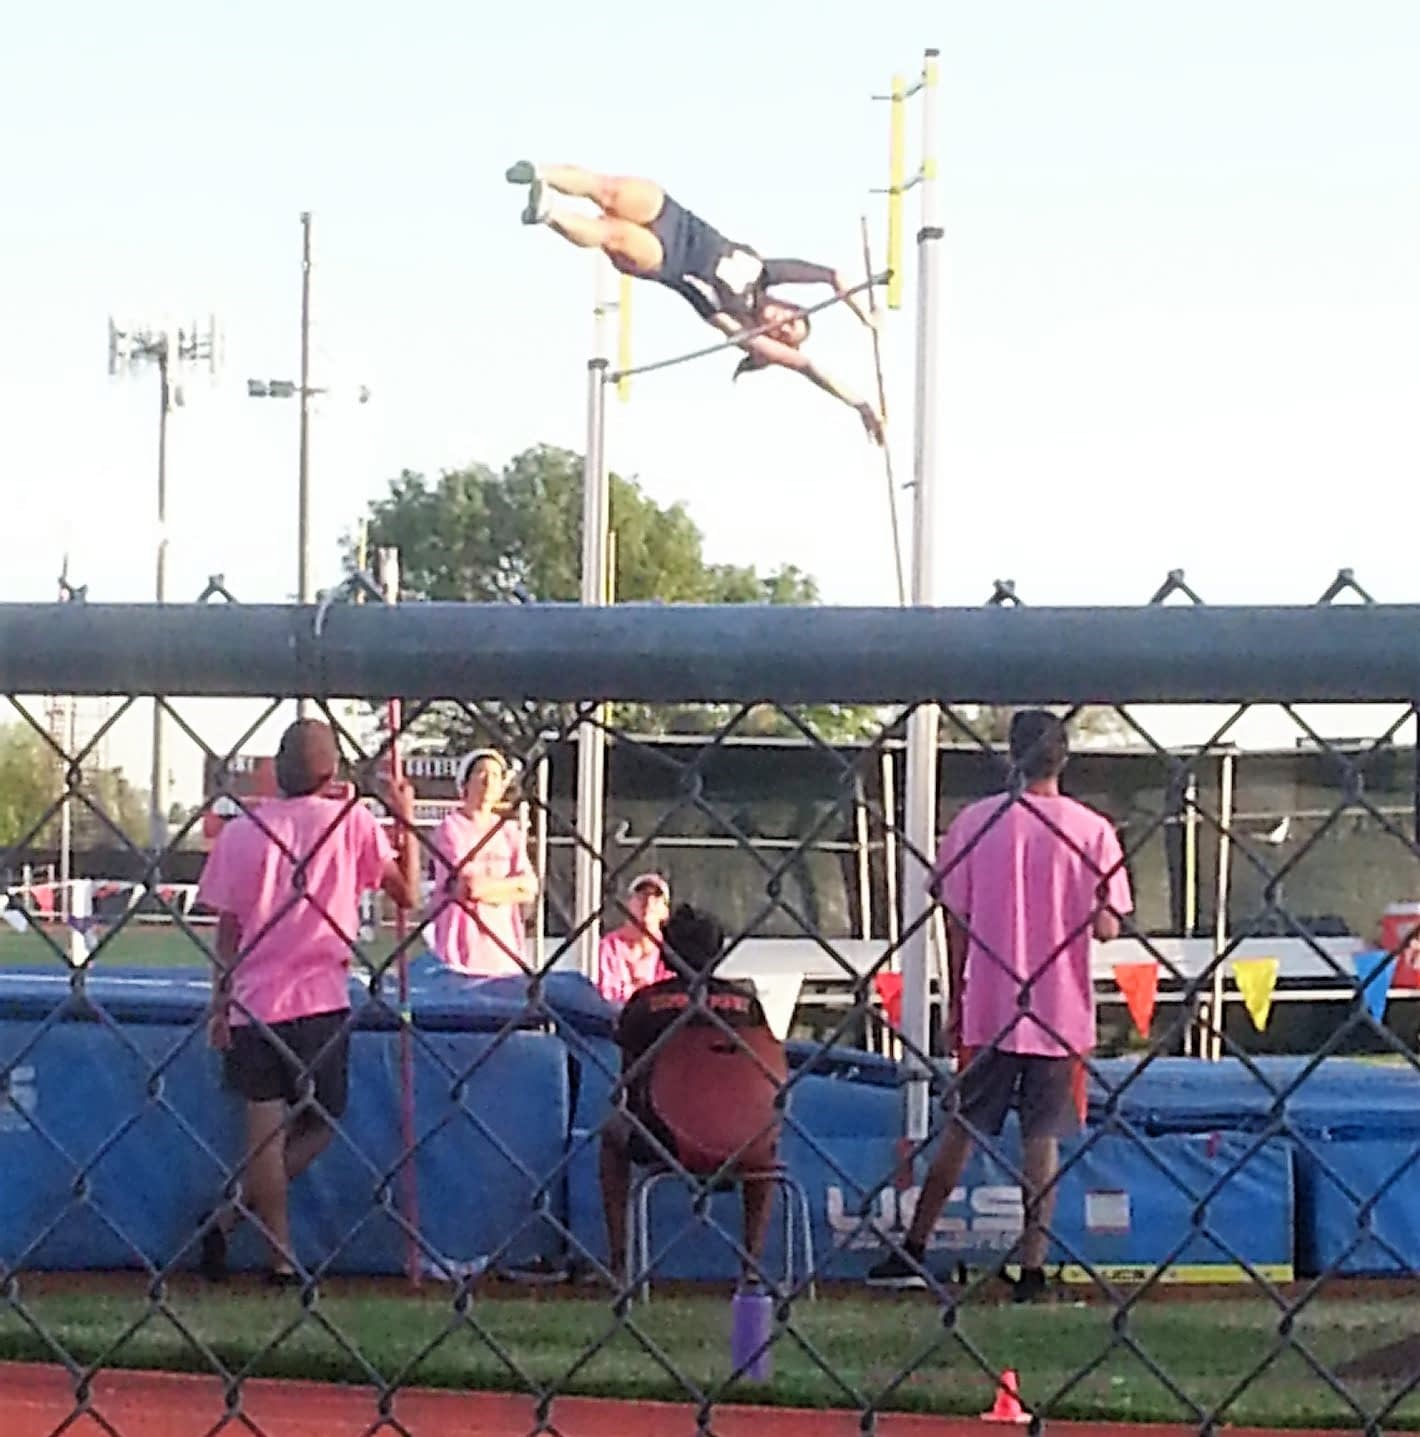 katy daly pole vault